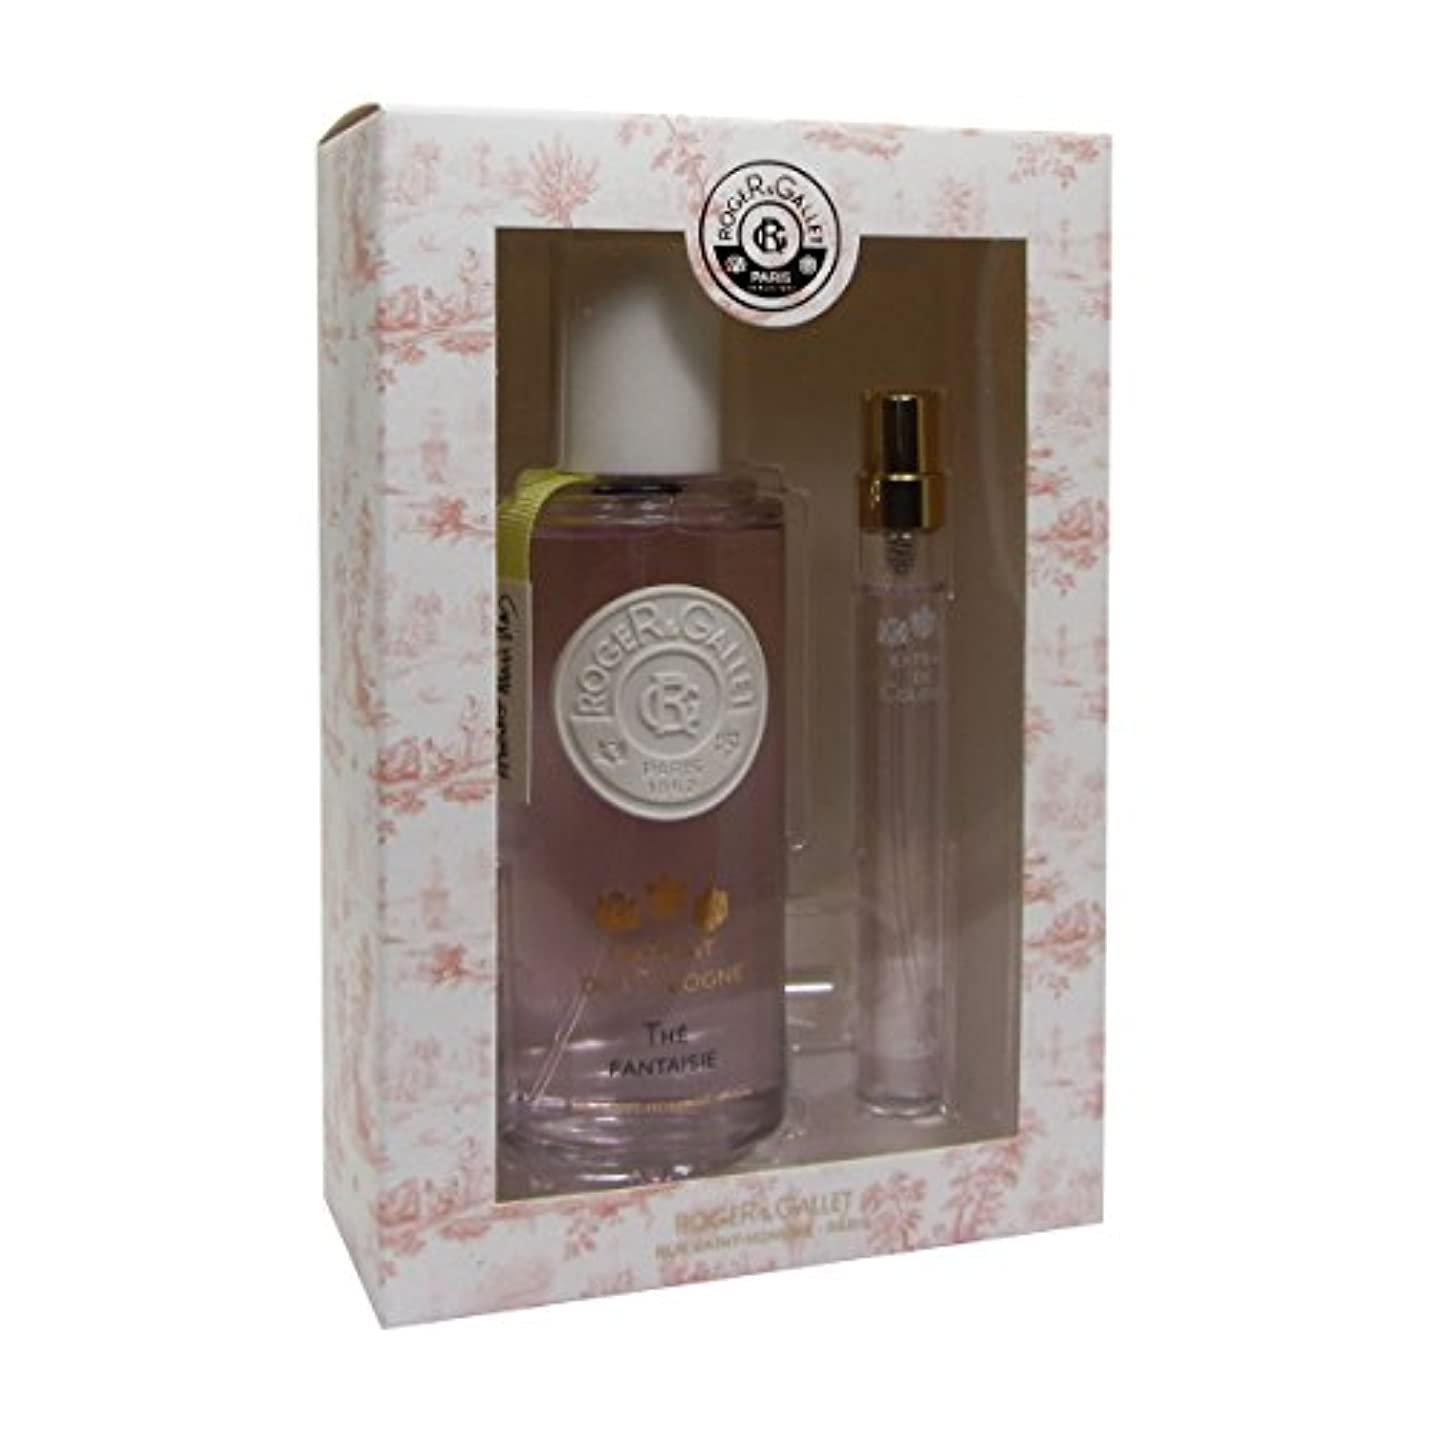 伝染性の姉妹堂々たるRoger Gallet The Fantaisie Cologne Extract 100ml + 10ml [並行輸入品]